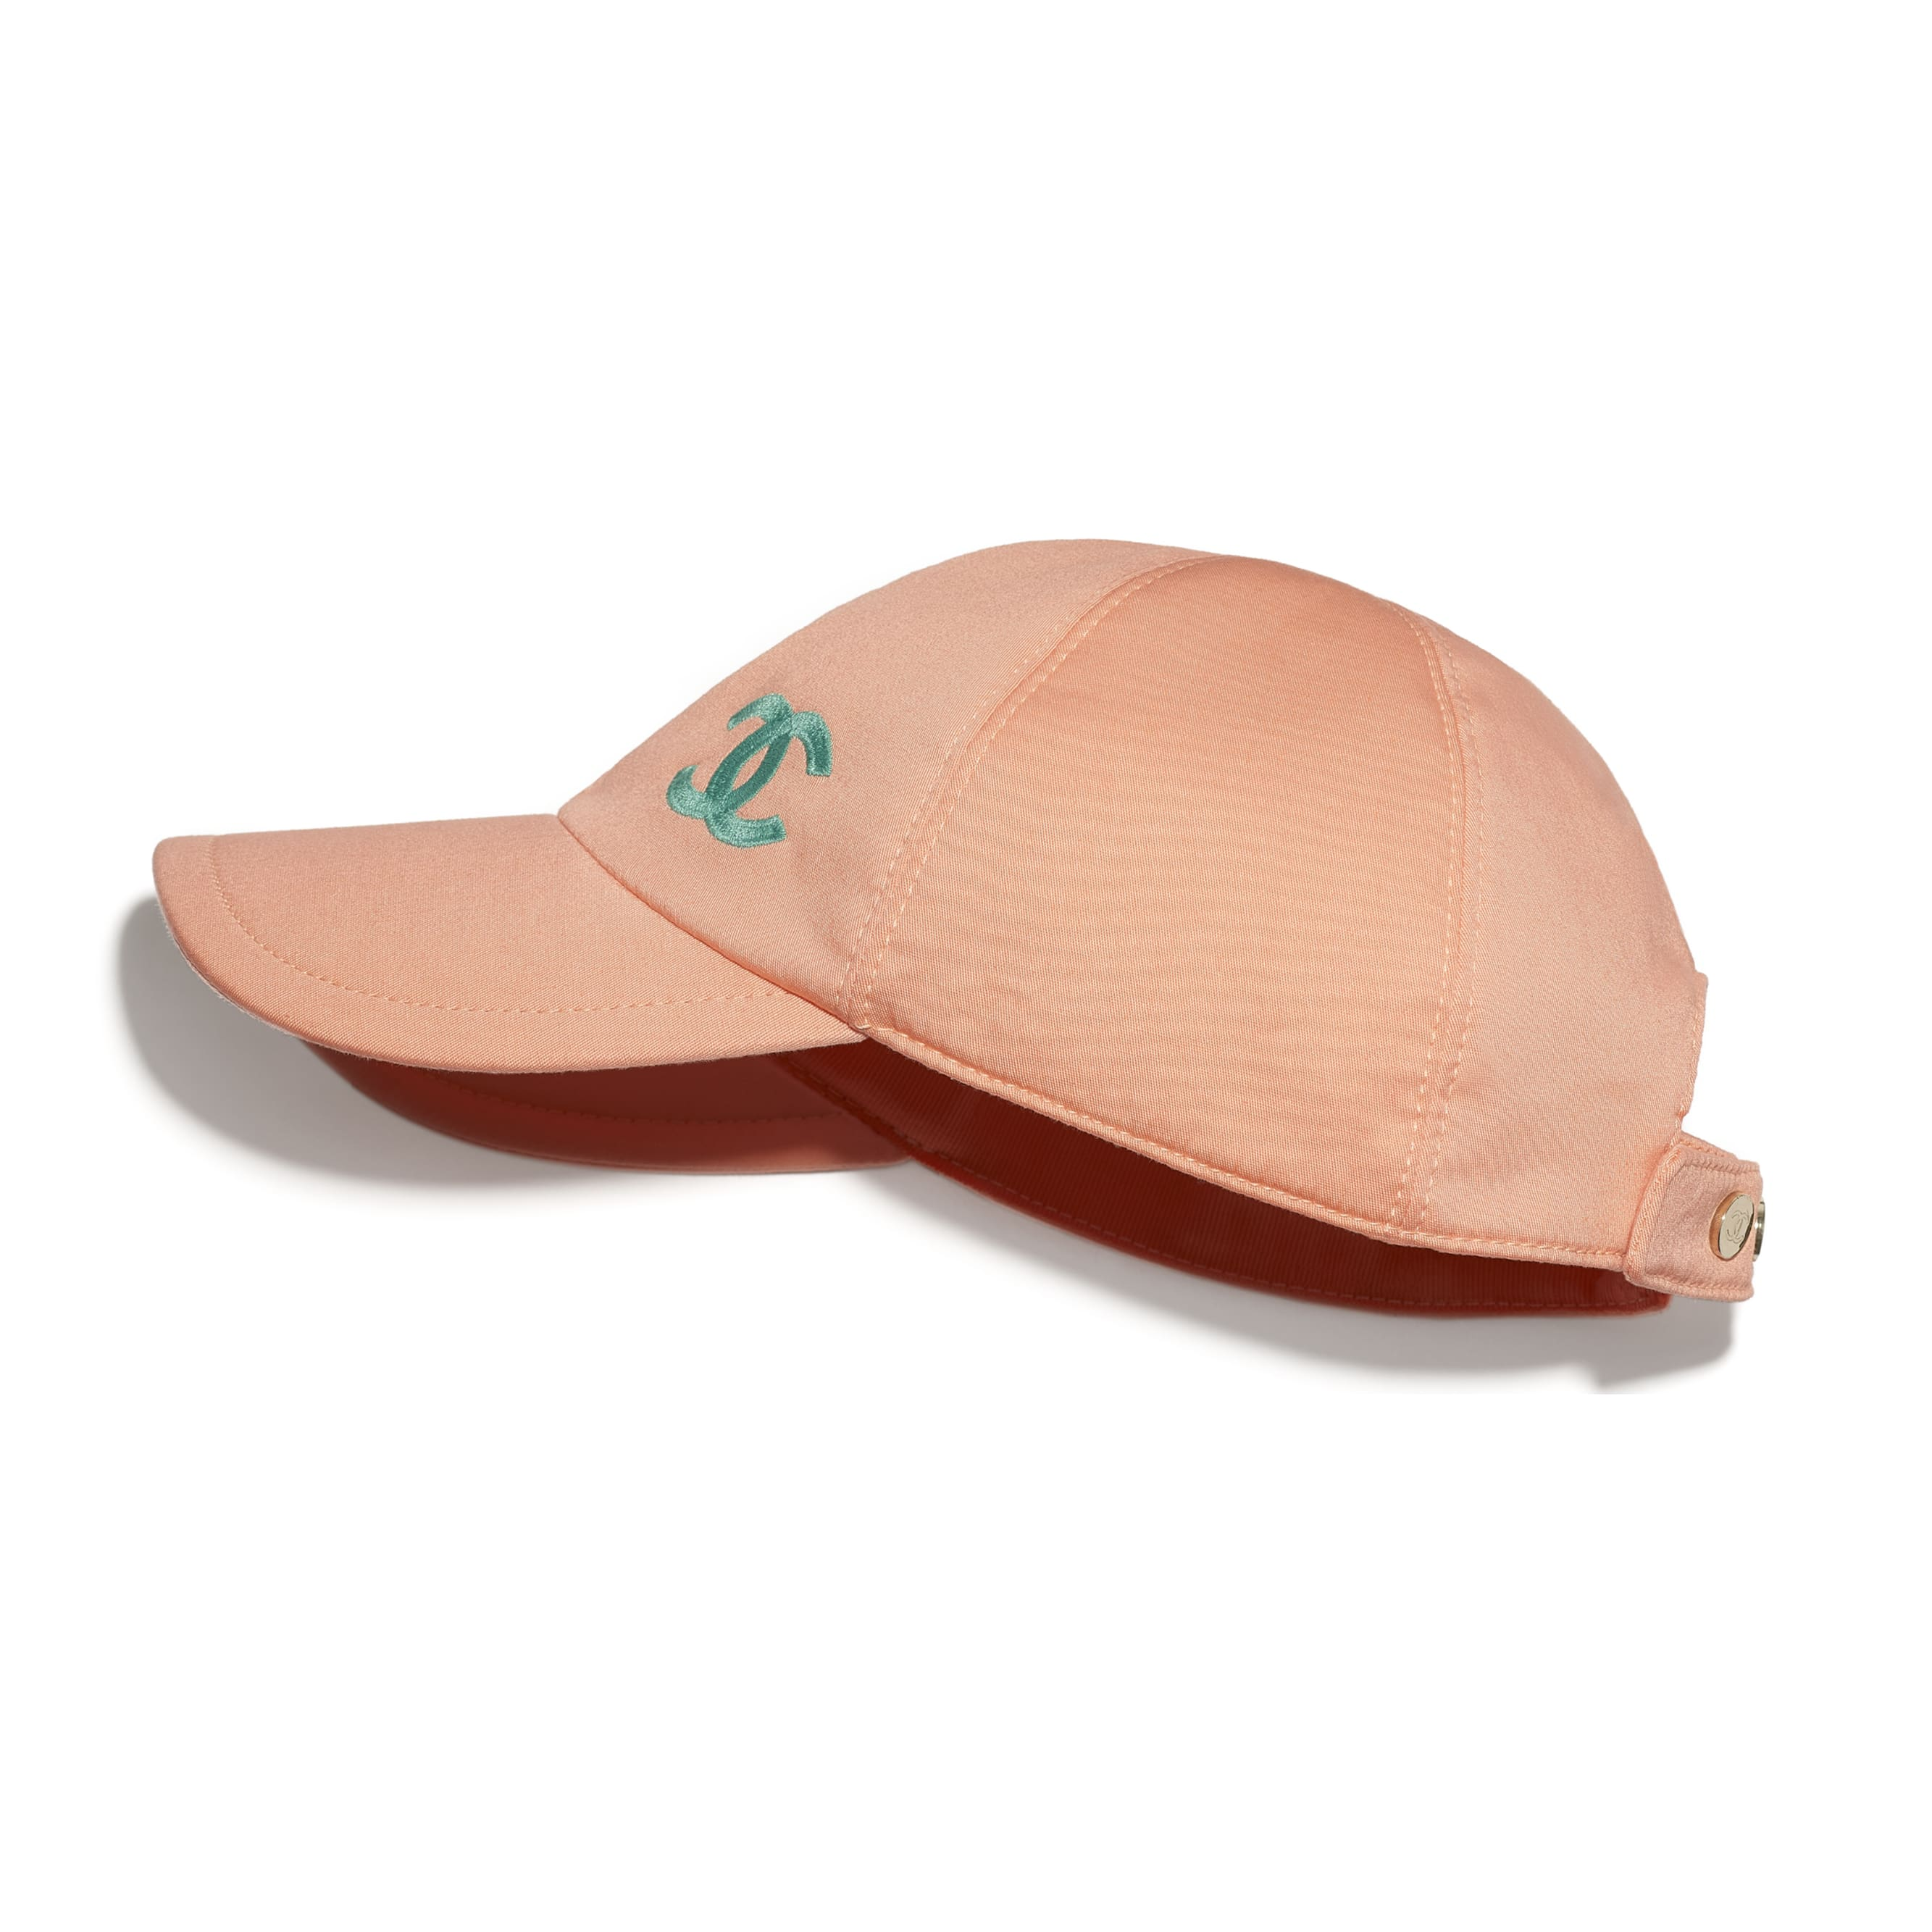 Cap - Orange & Turquoise - Cotton - CHANEL - Default view - see standard sized version